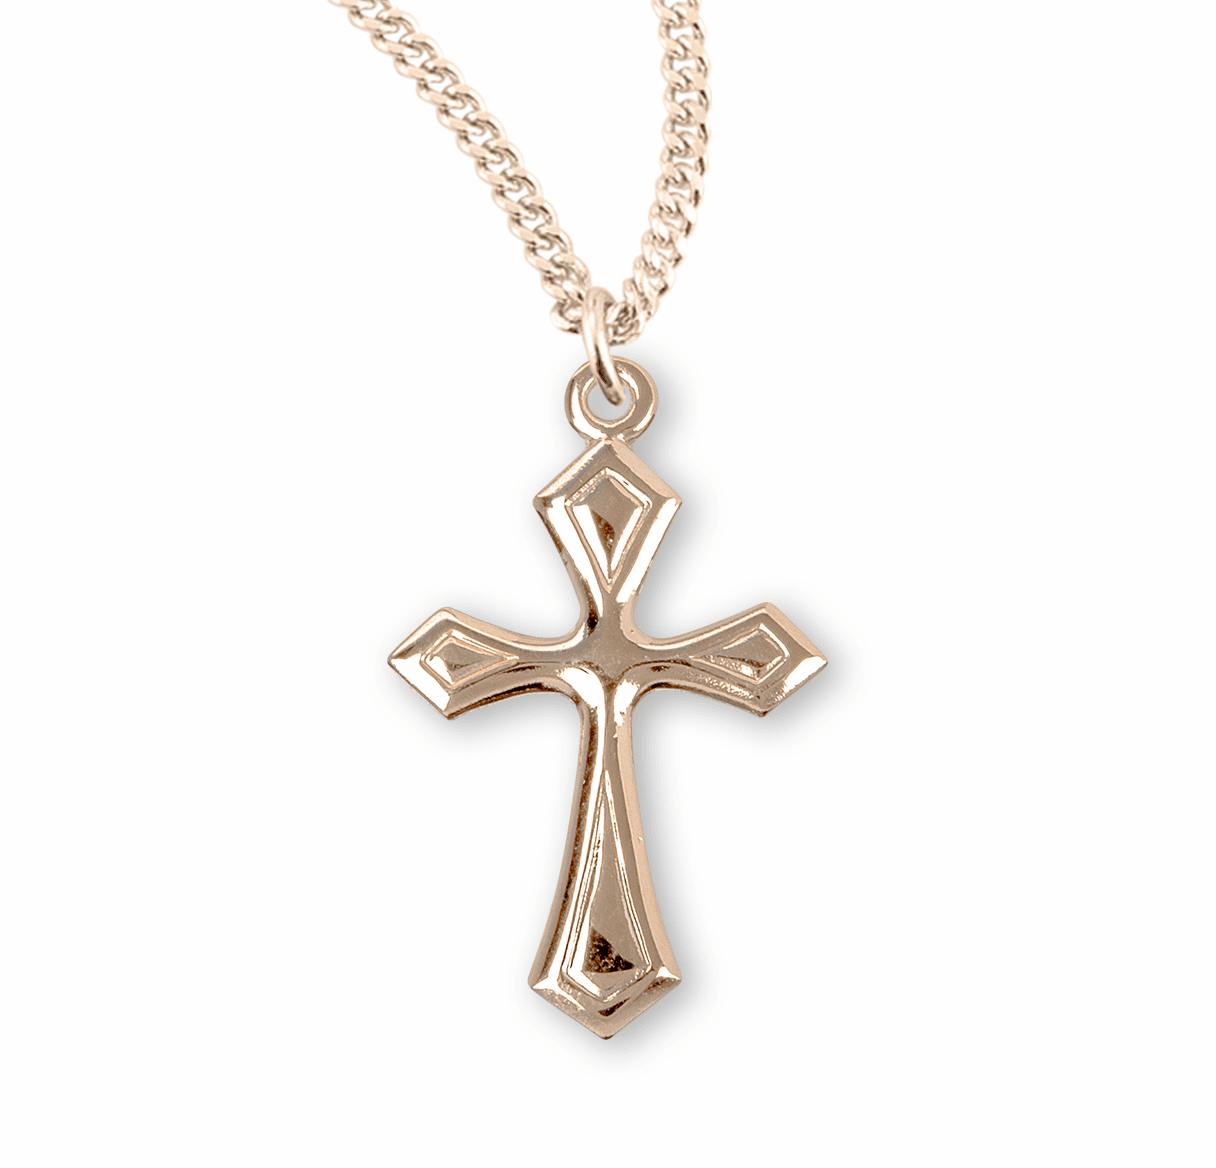 Fancy Flared Gold Relgious Cross Necklace by HMH Religious